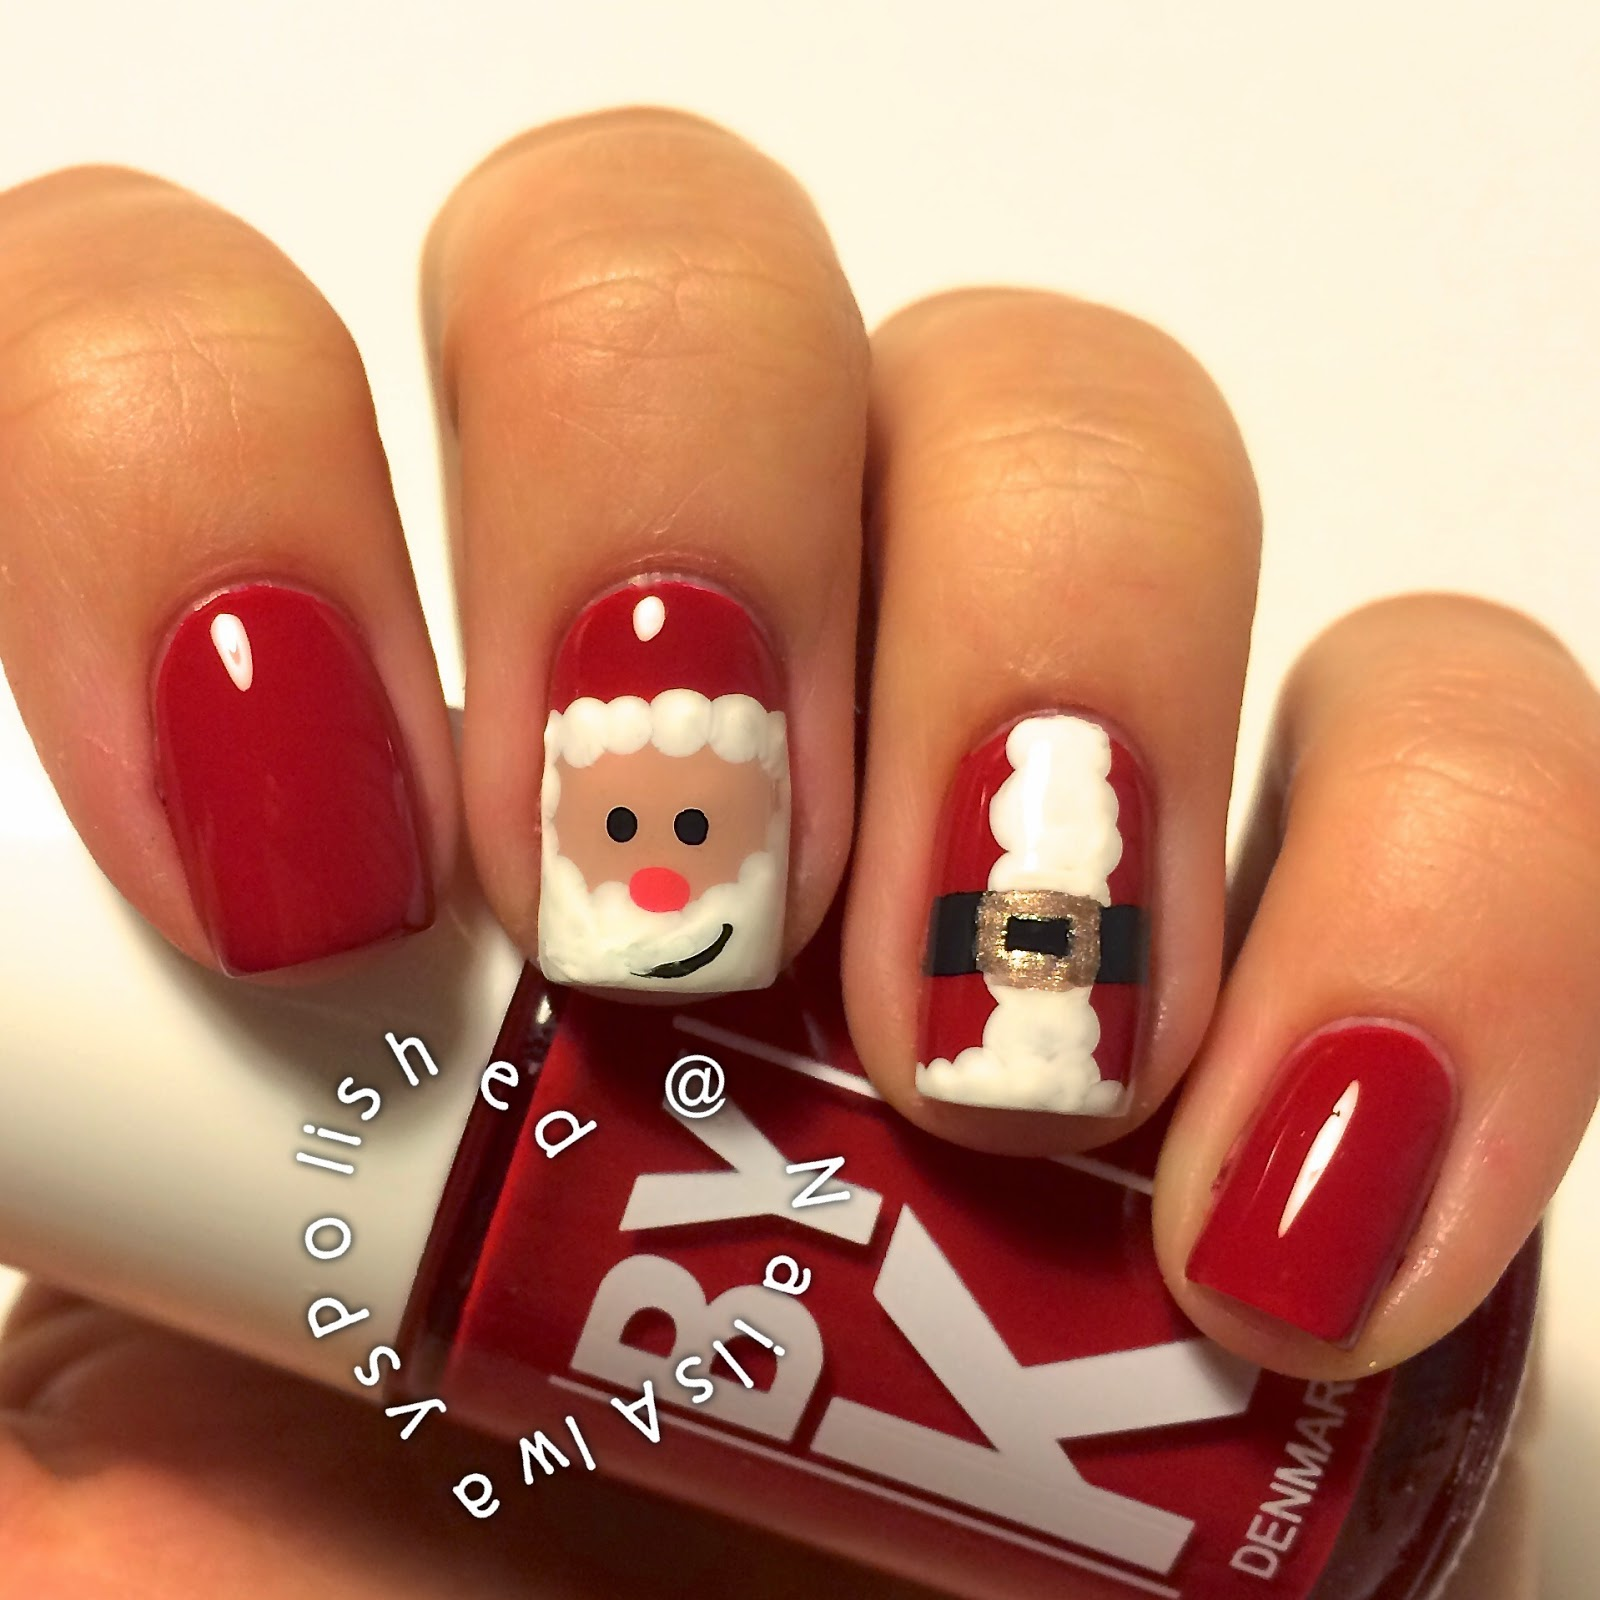 Santa Claus Nail Art: Nails Always Polished: Santa Claus